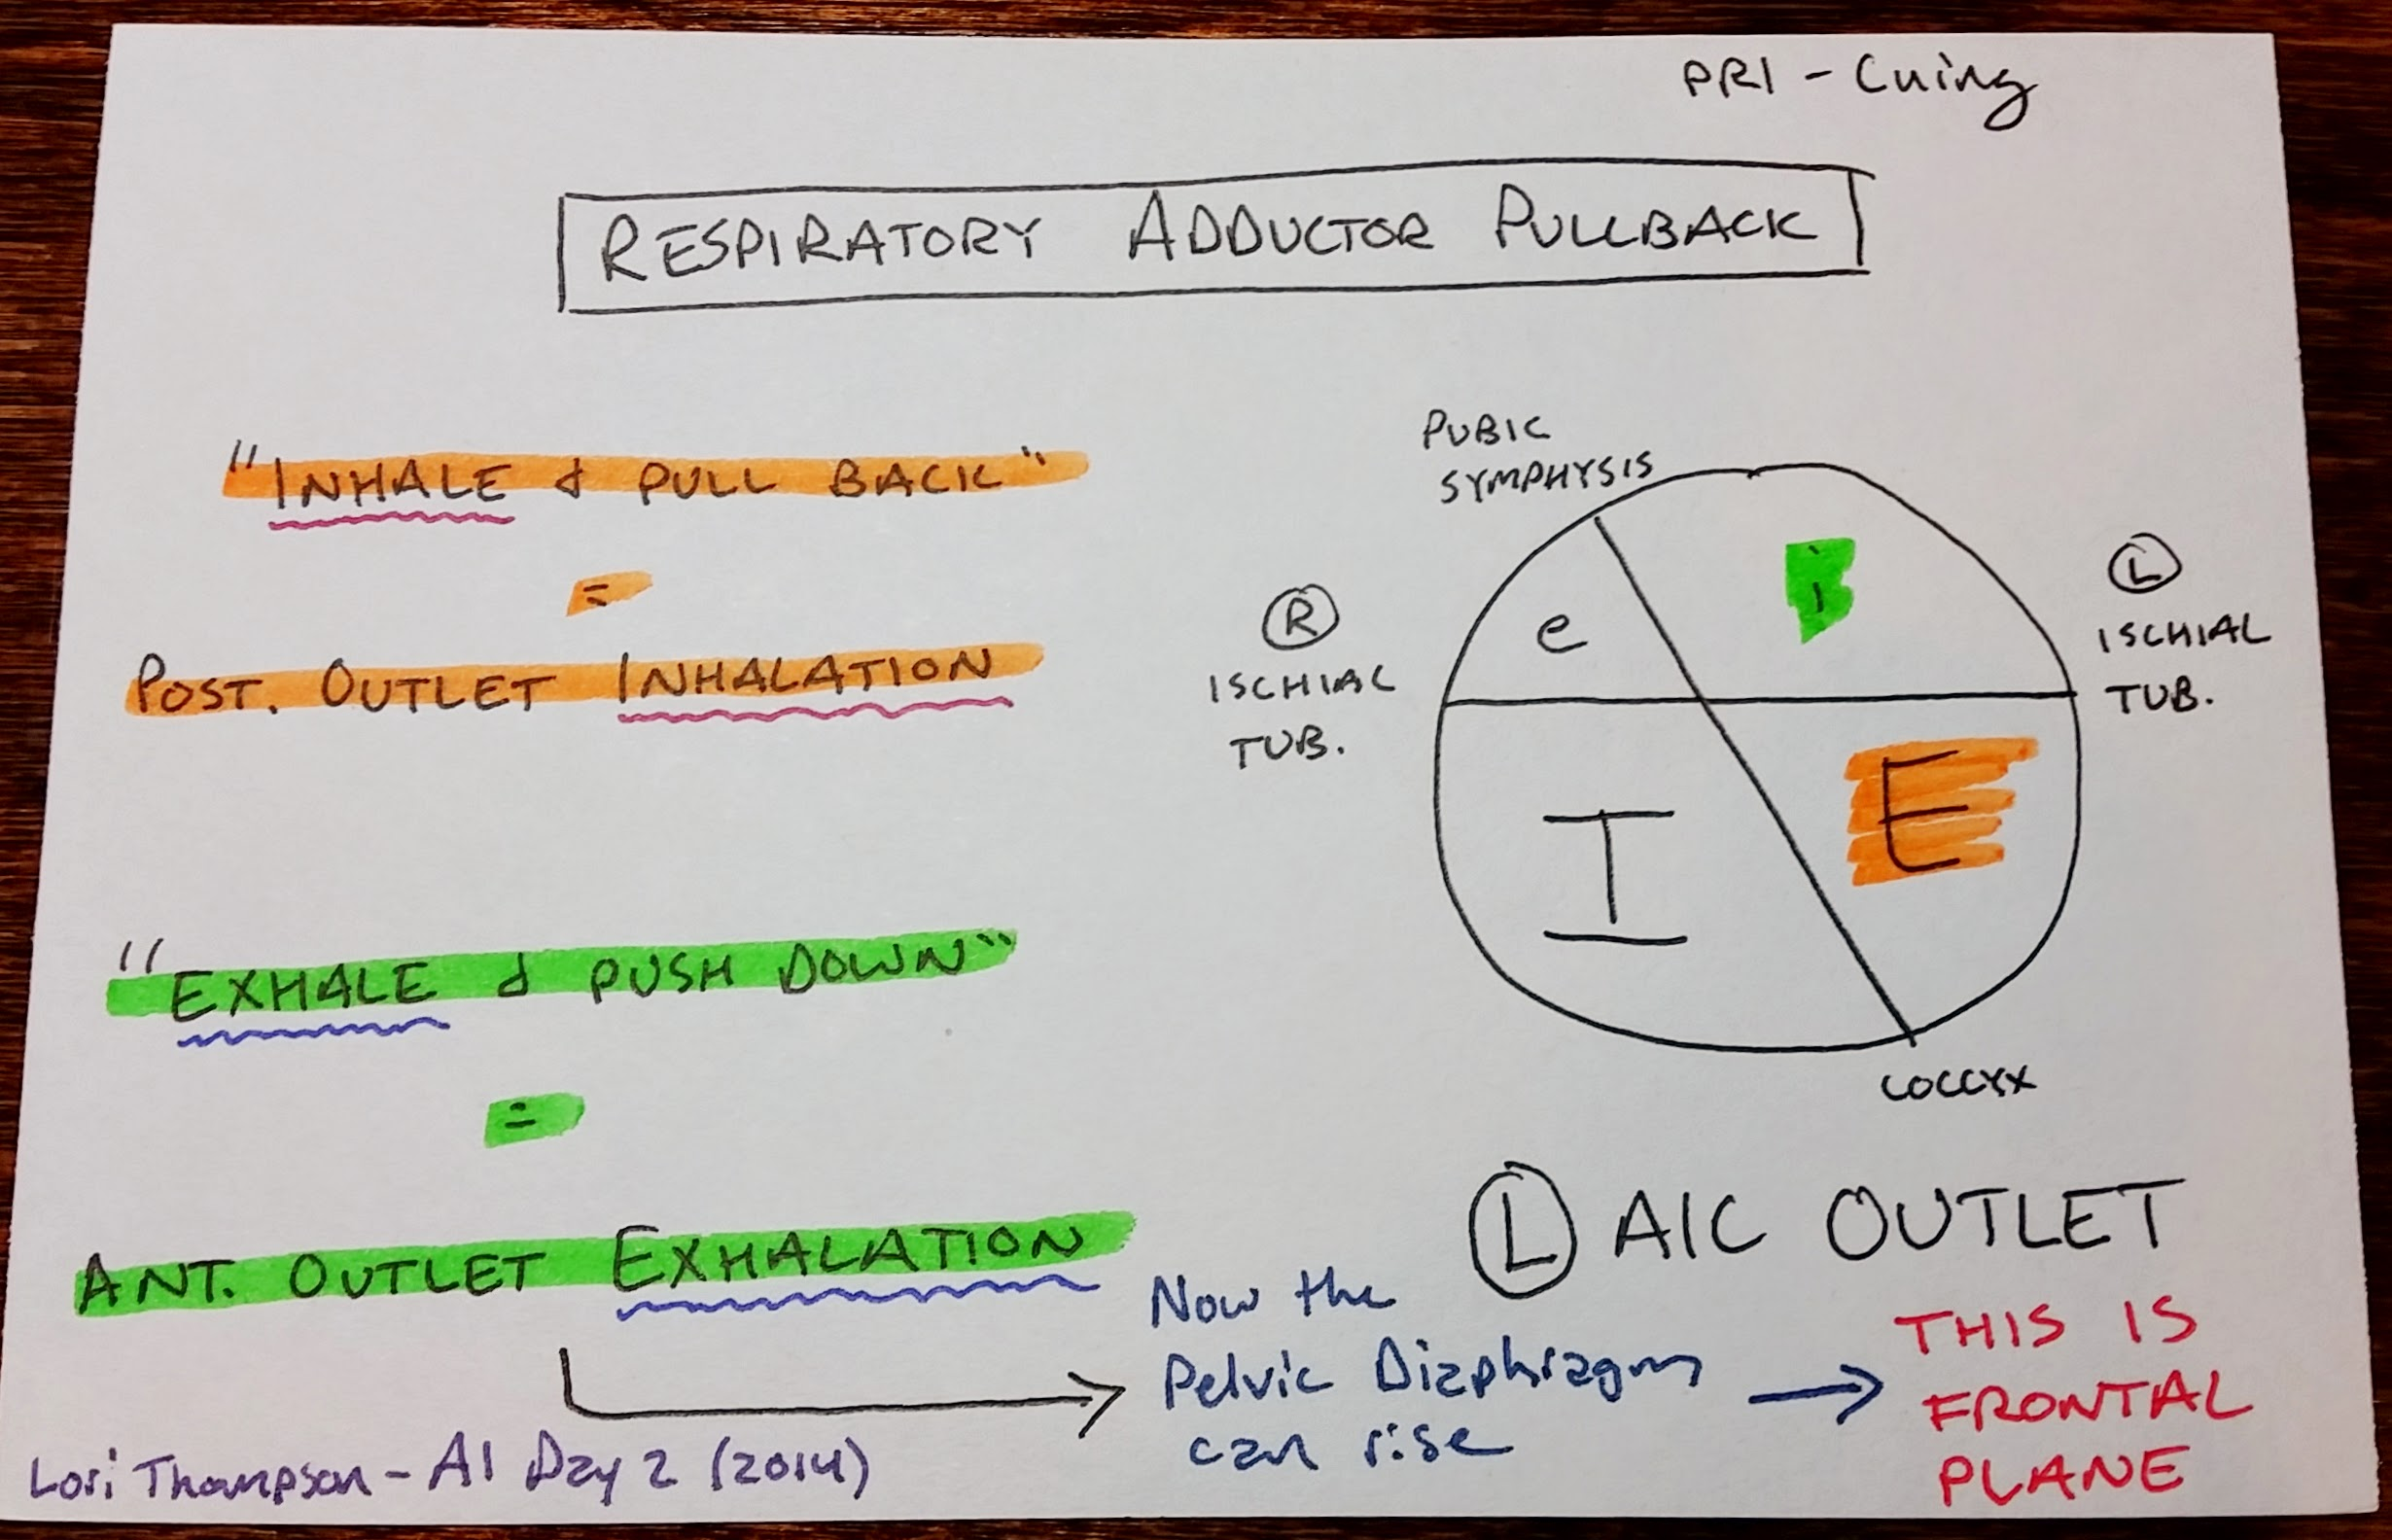 Course Recap Pri Advanced Integration Day 2 Inhalation Exhalation Diagram Of Diaphragm The Inhaled Left Anterior Inlet In A State Greater This Allows Pelvic Septum To Rise On And Helps Us Achieve